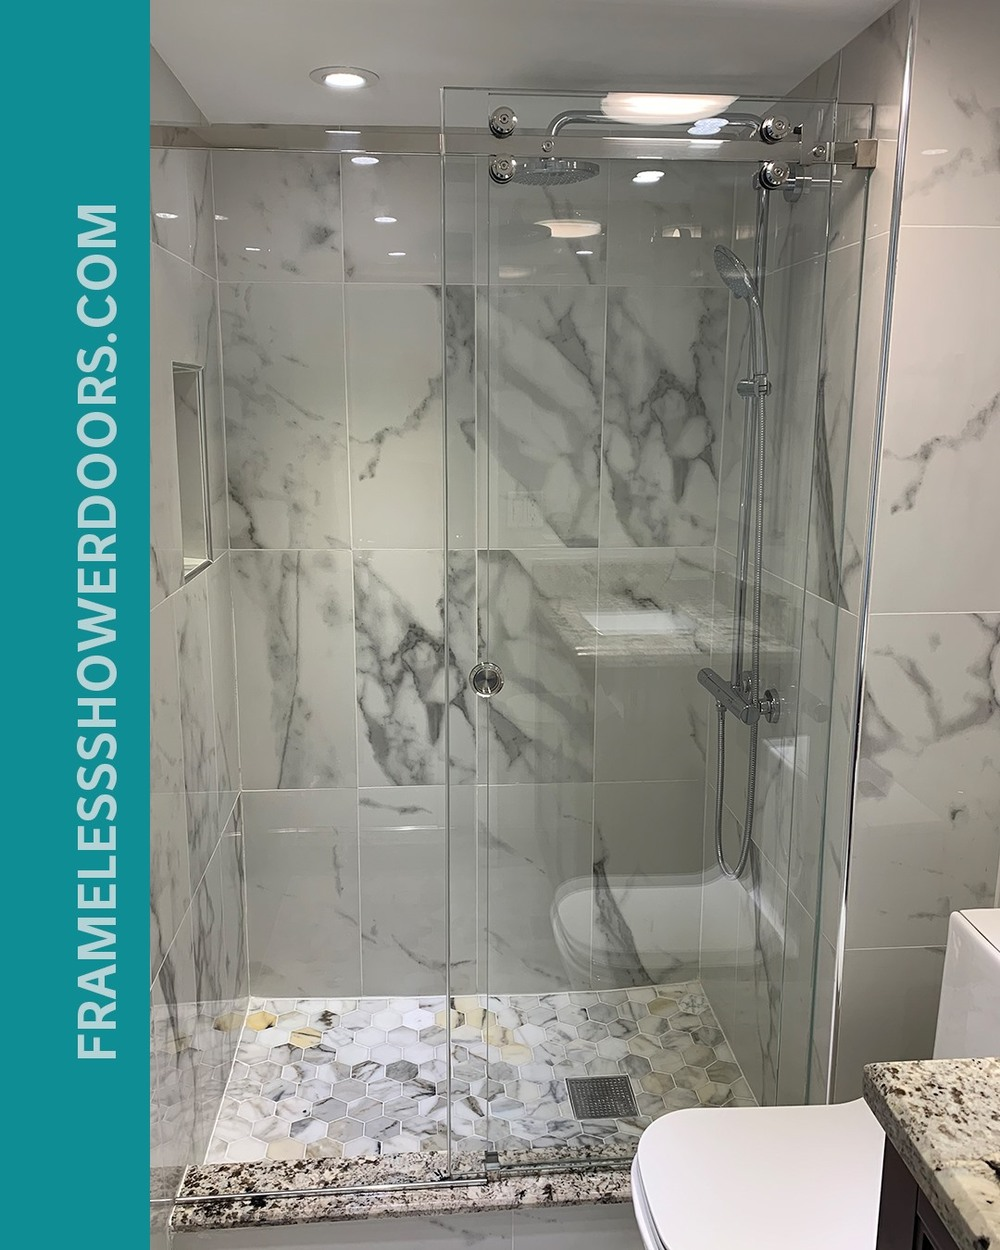 The Original Frameless Showers Doors Company Announces Reasons to Update Bathrooms